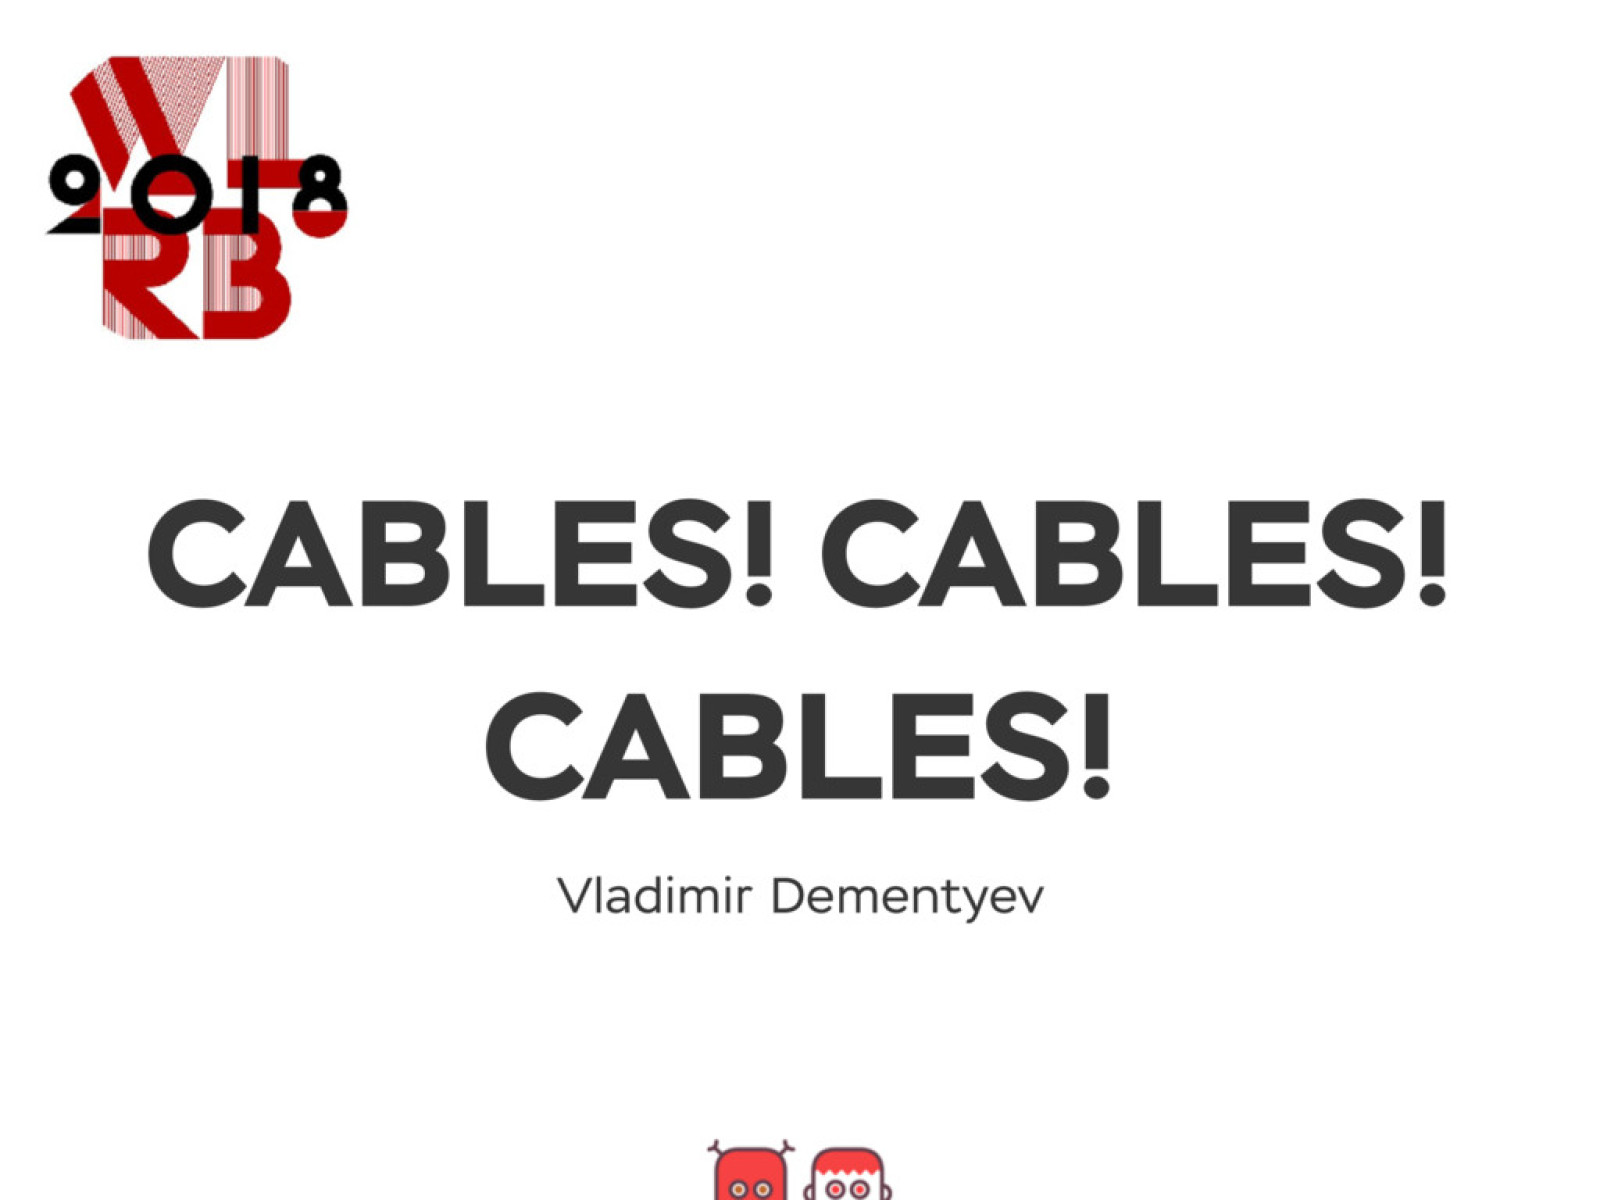 Cables! Cables! Cables!